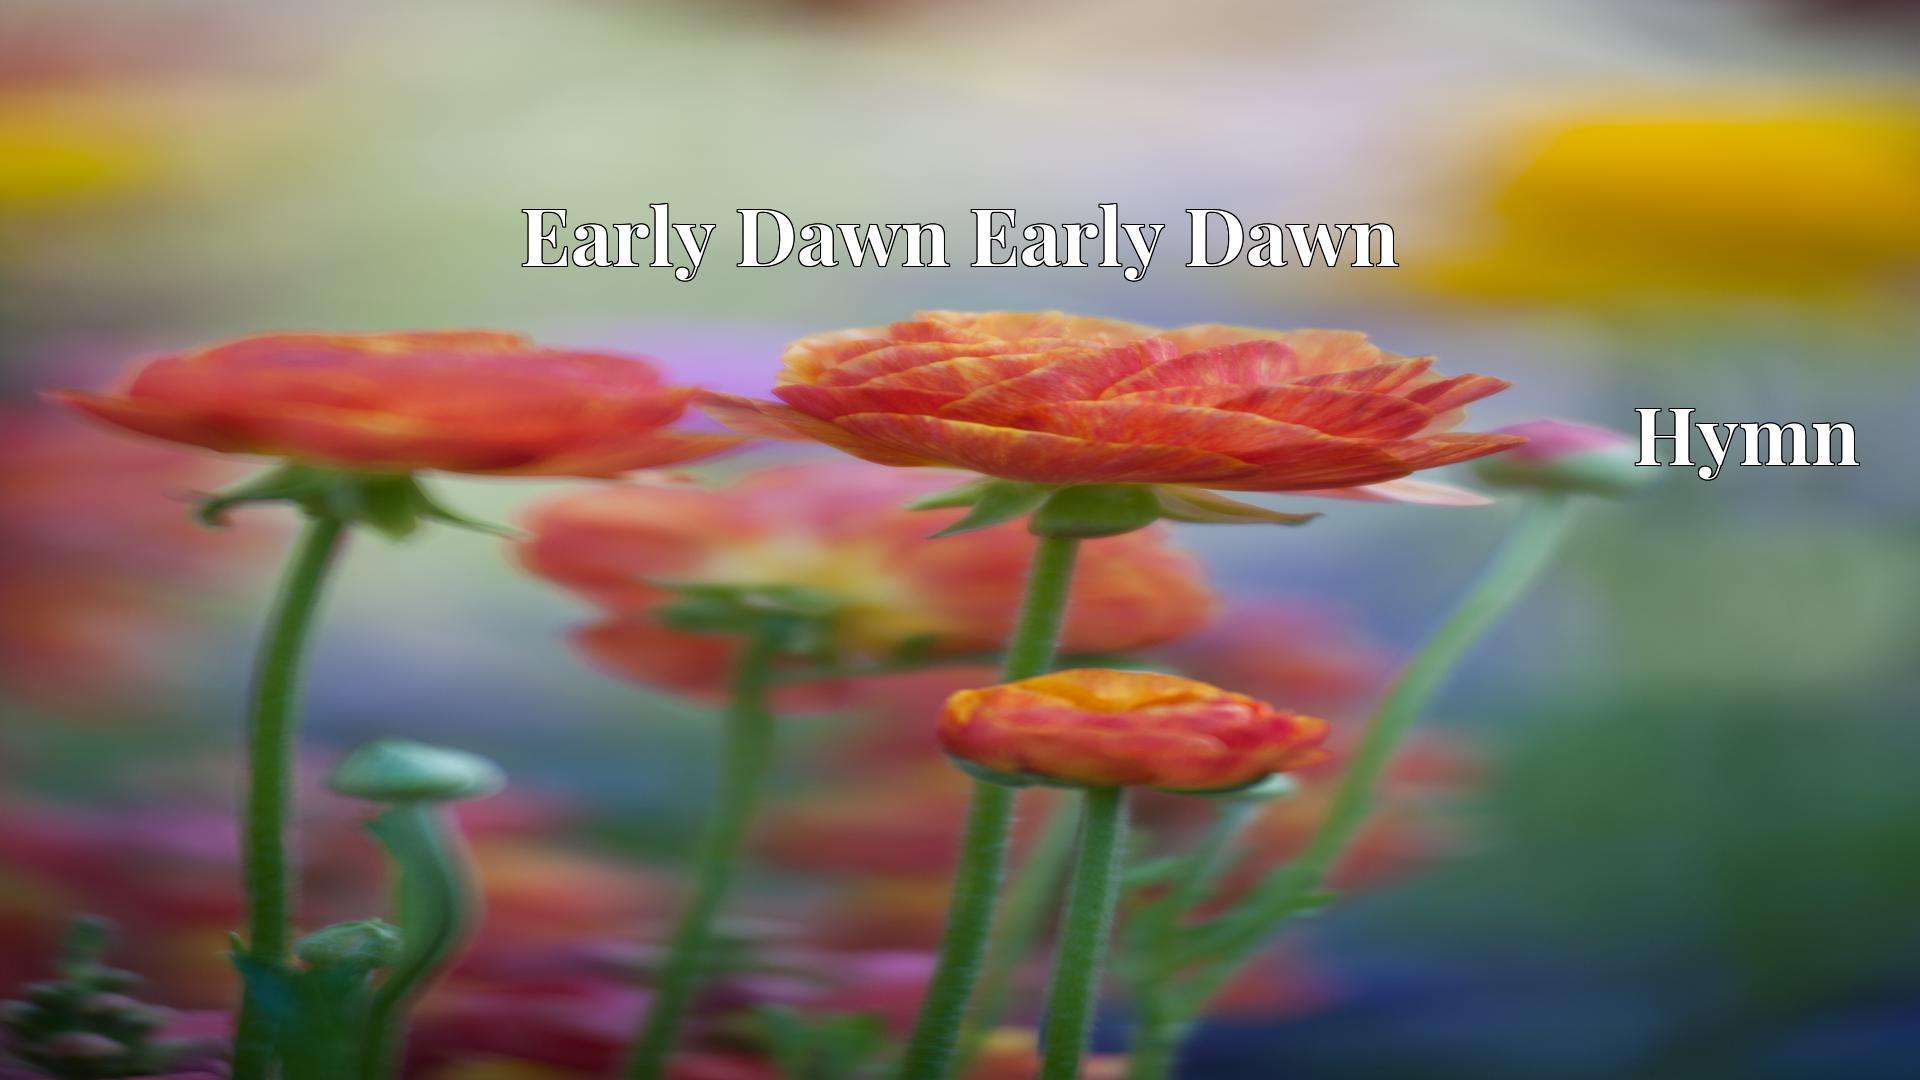 Early Dawn Early Dawn - Hymn